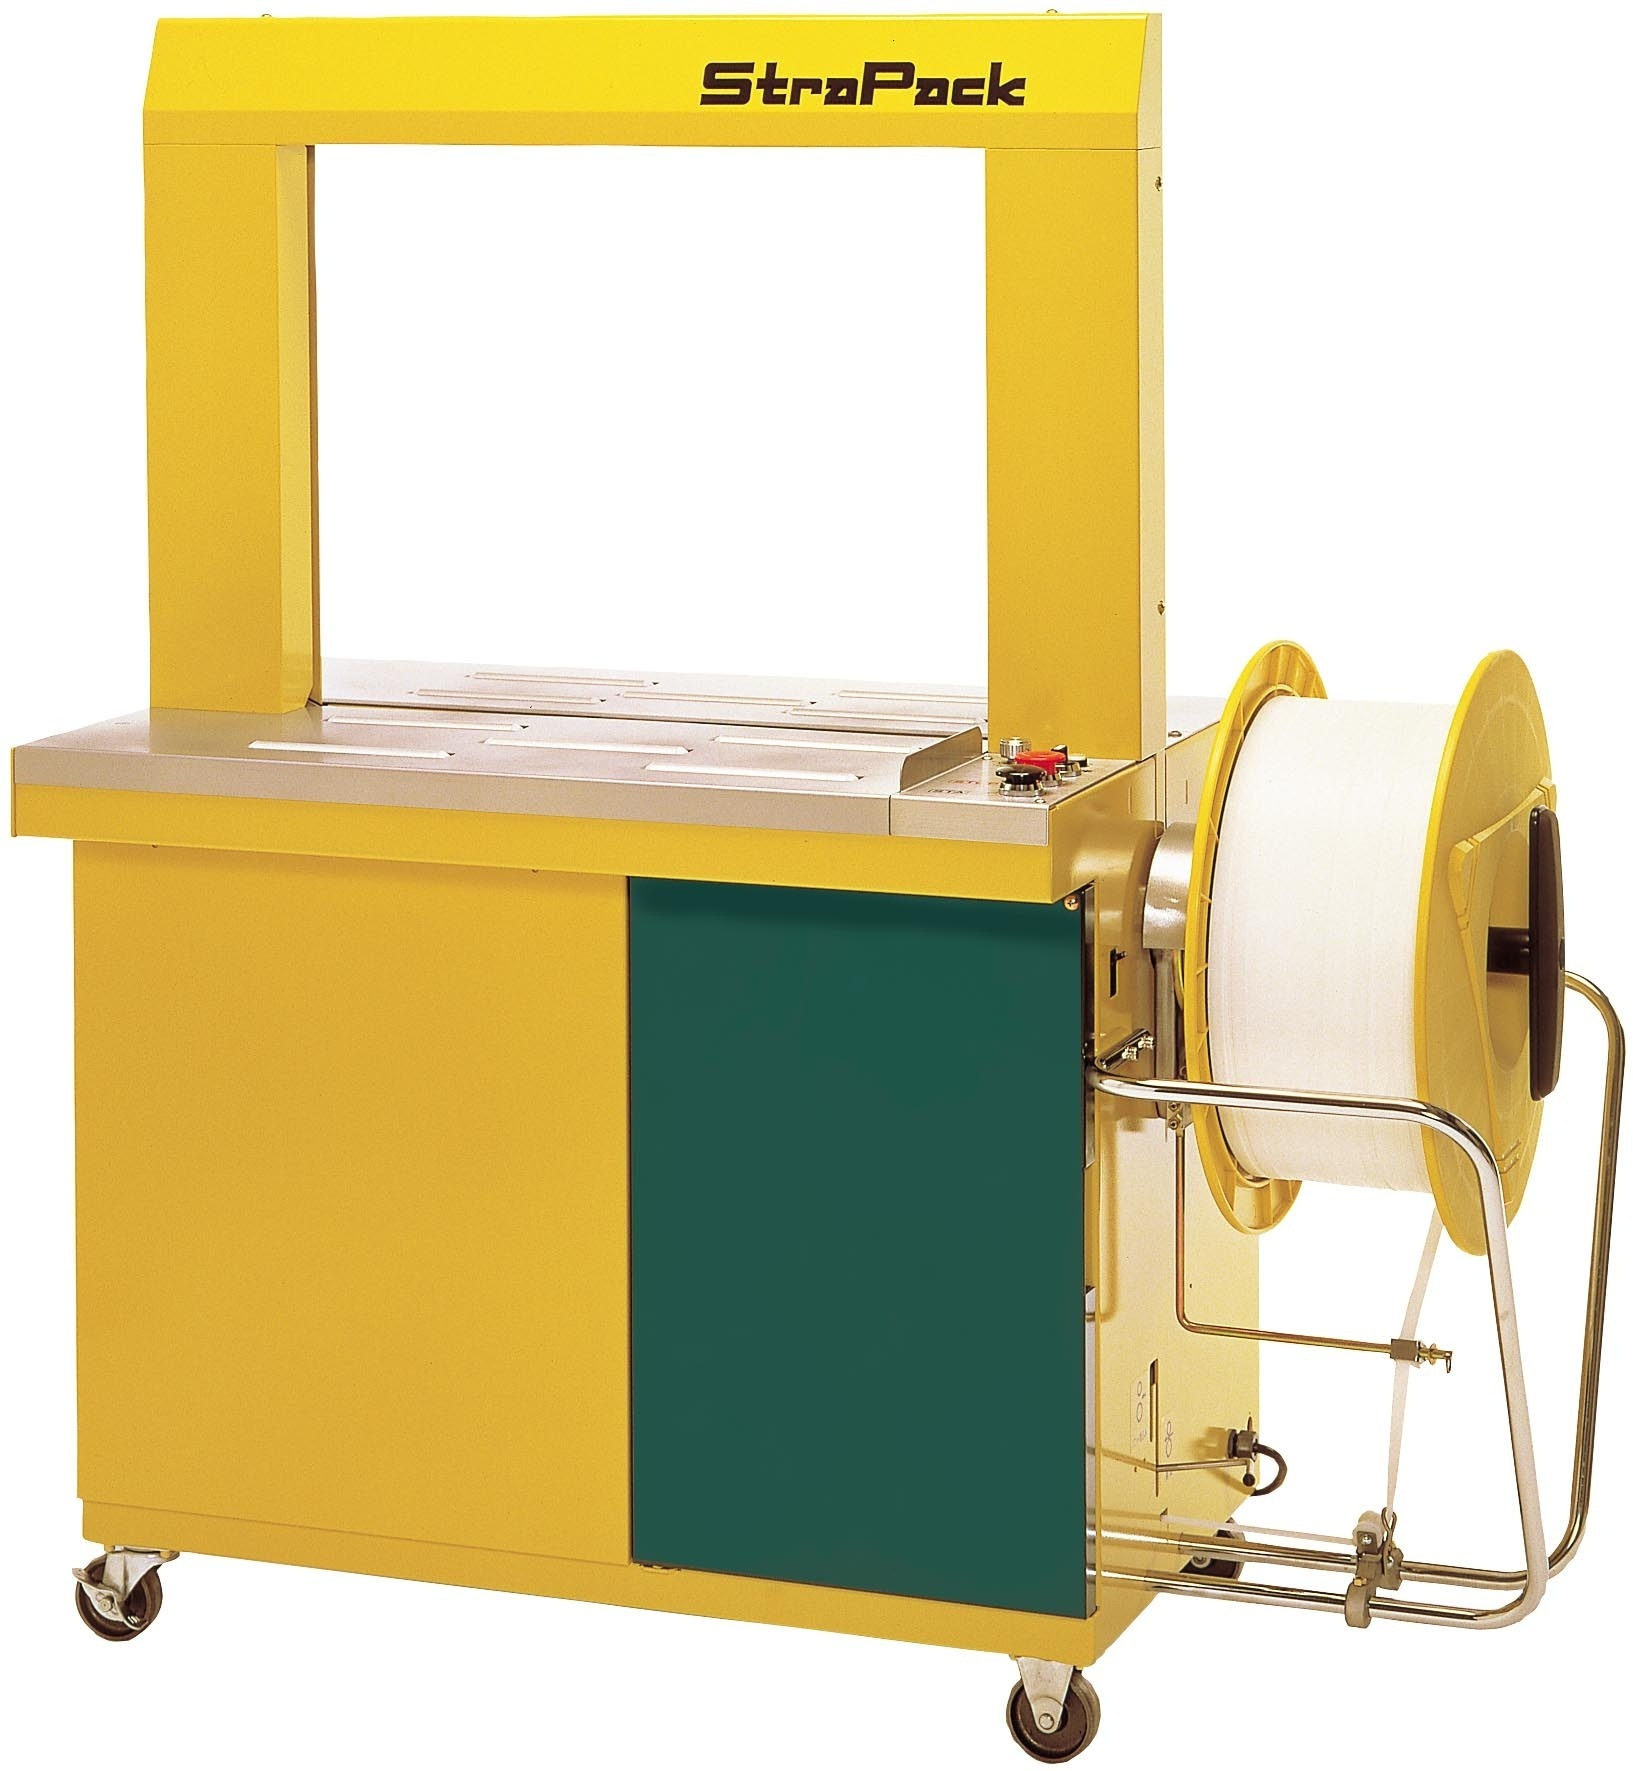 Commercial automatic strapping machines and equipment from GTI Industries Inc in Florida, USA